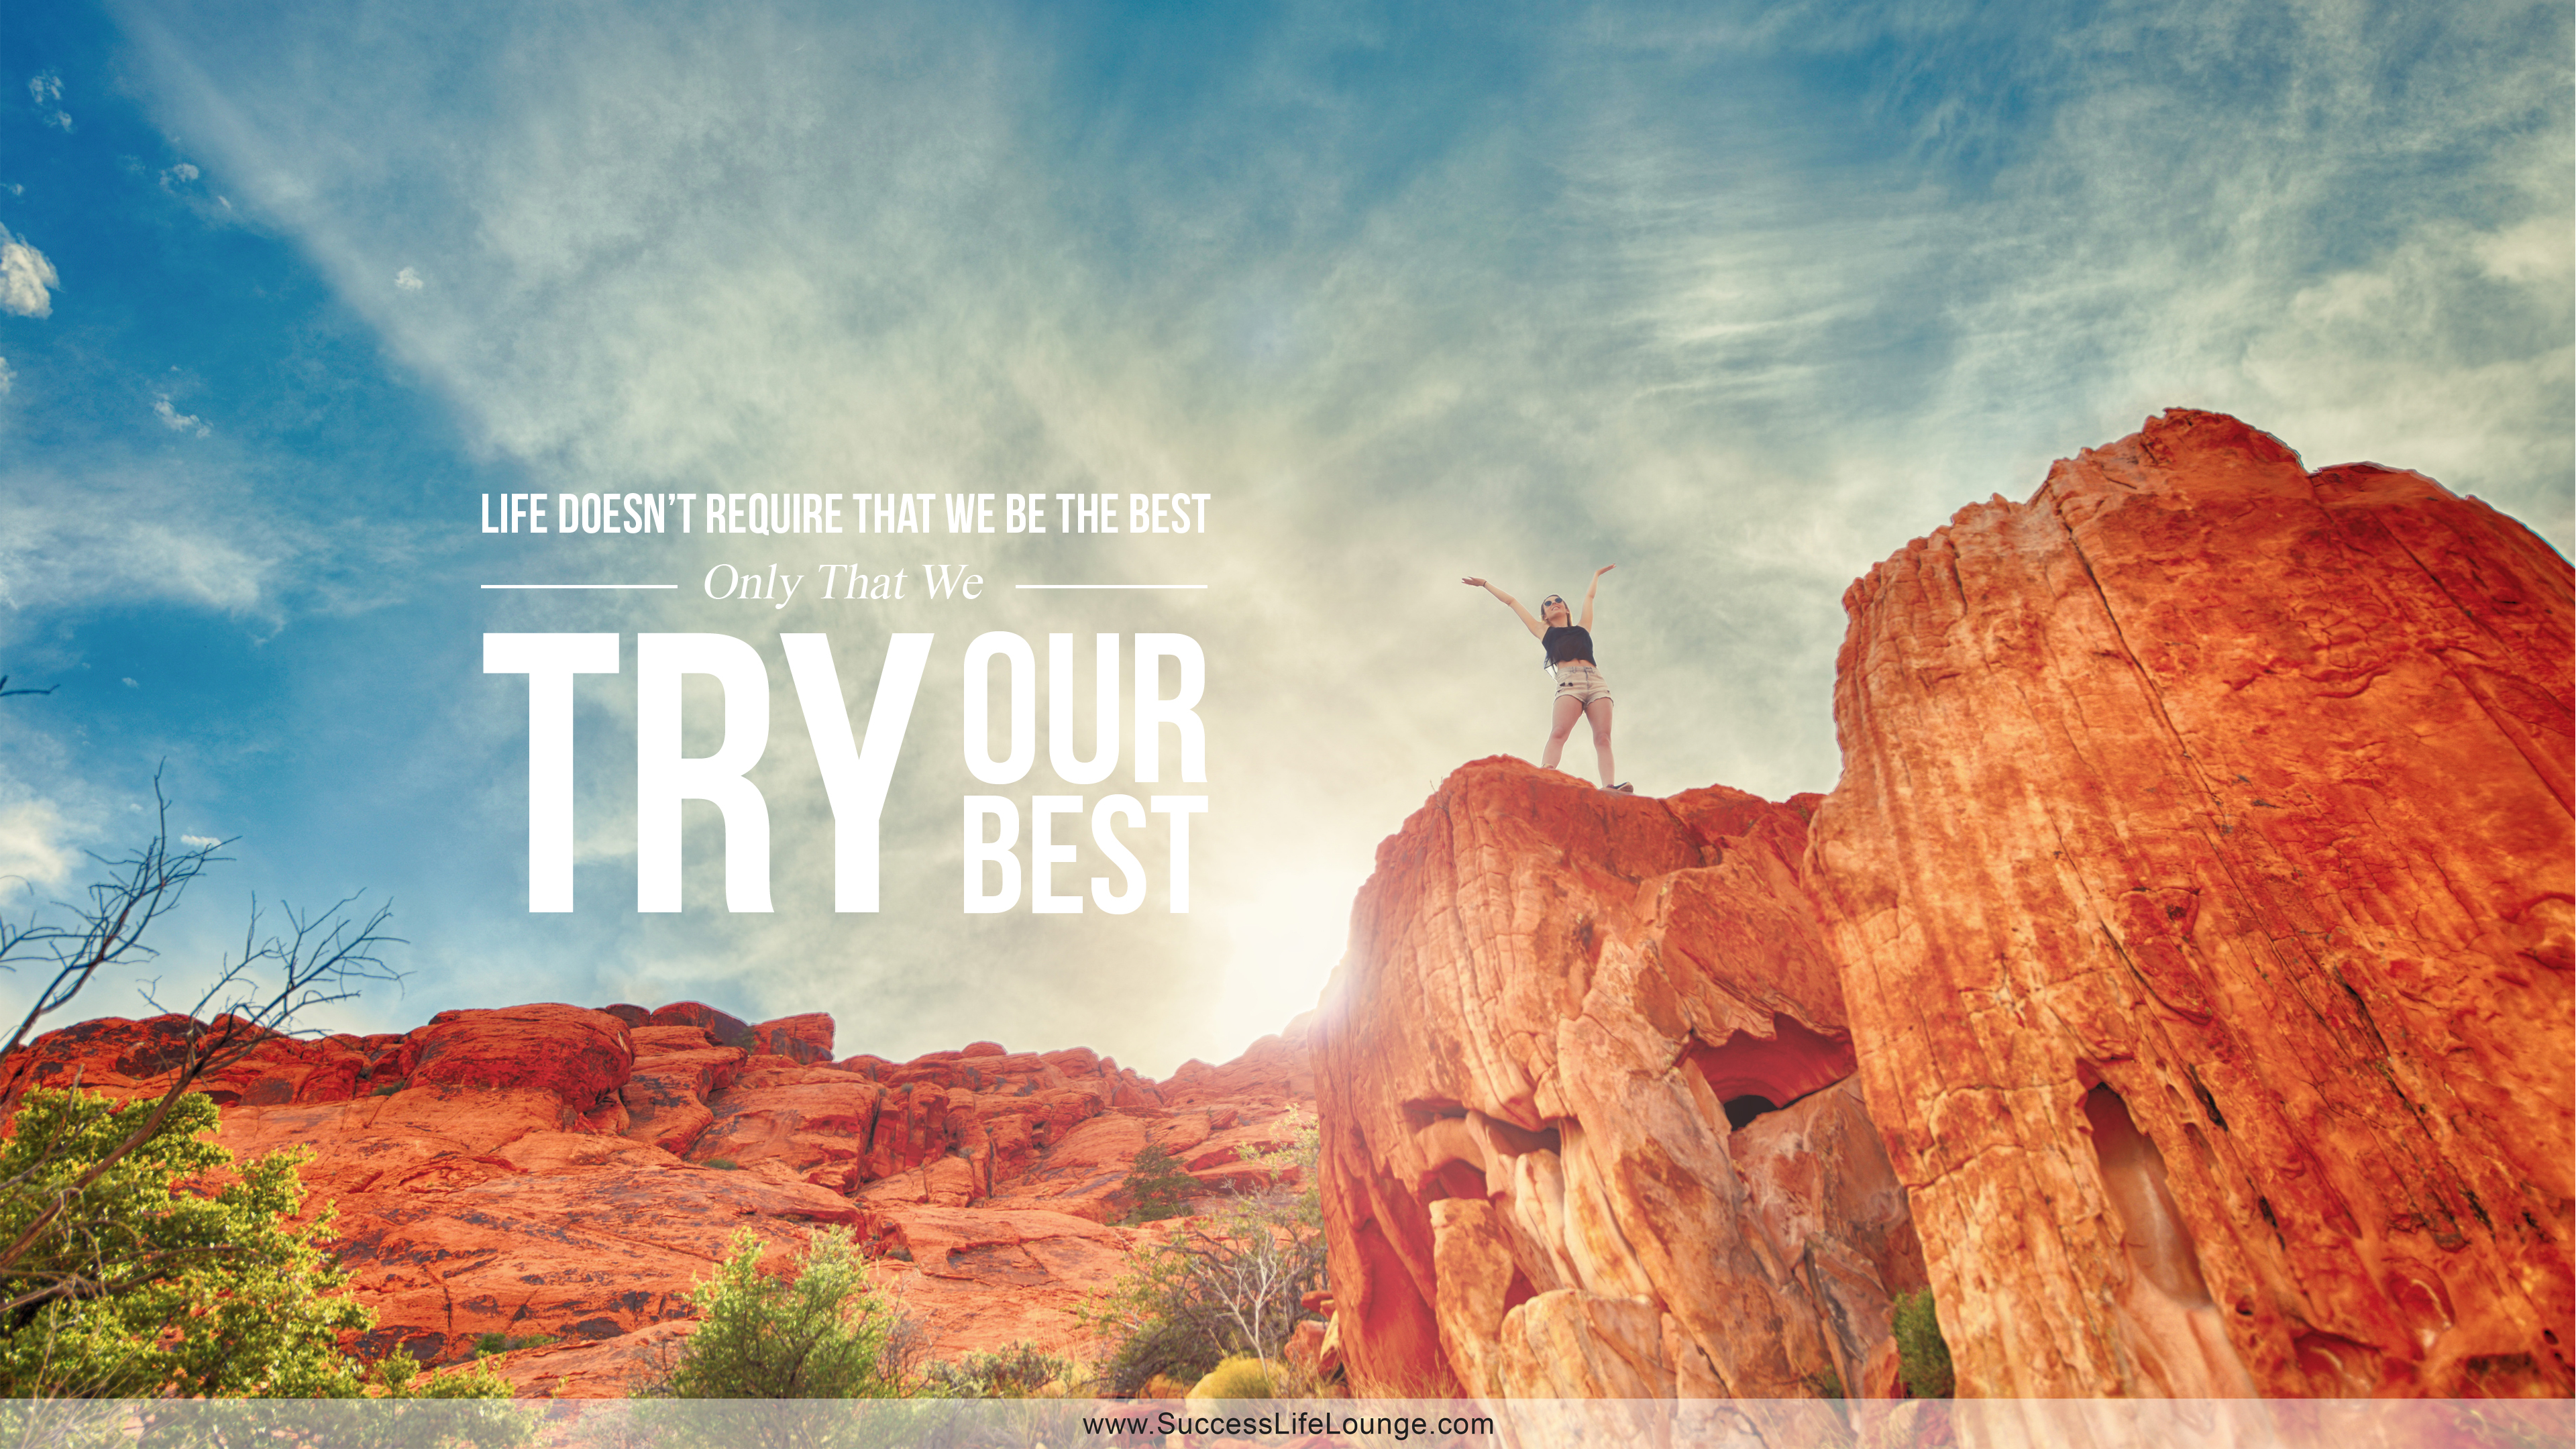 5 free success/motivational hd wallpaper. - success life lounge